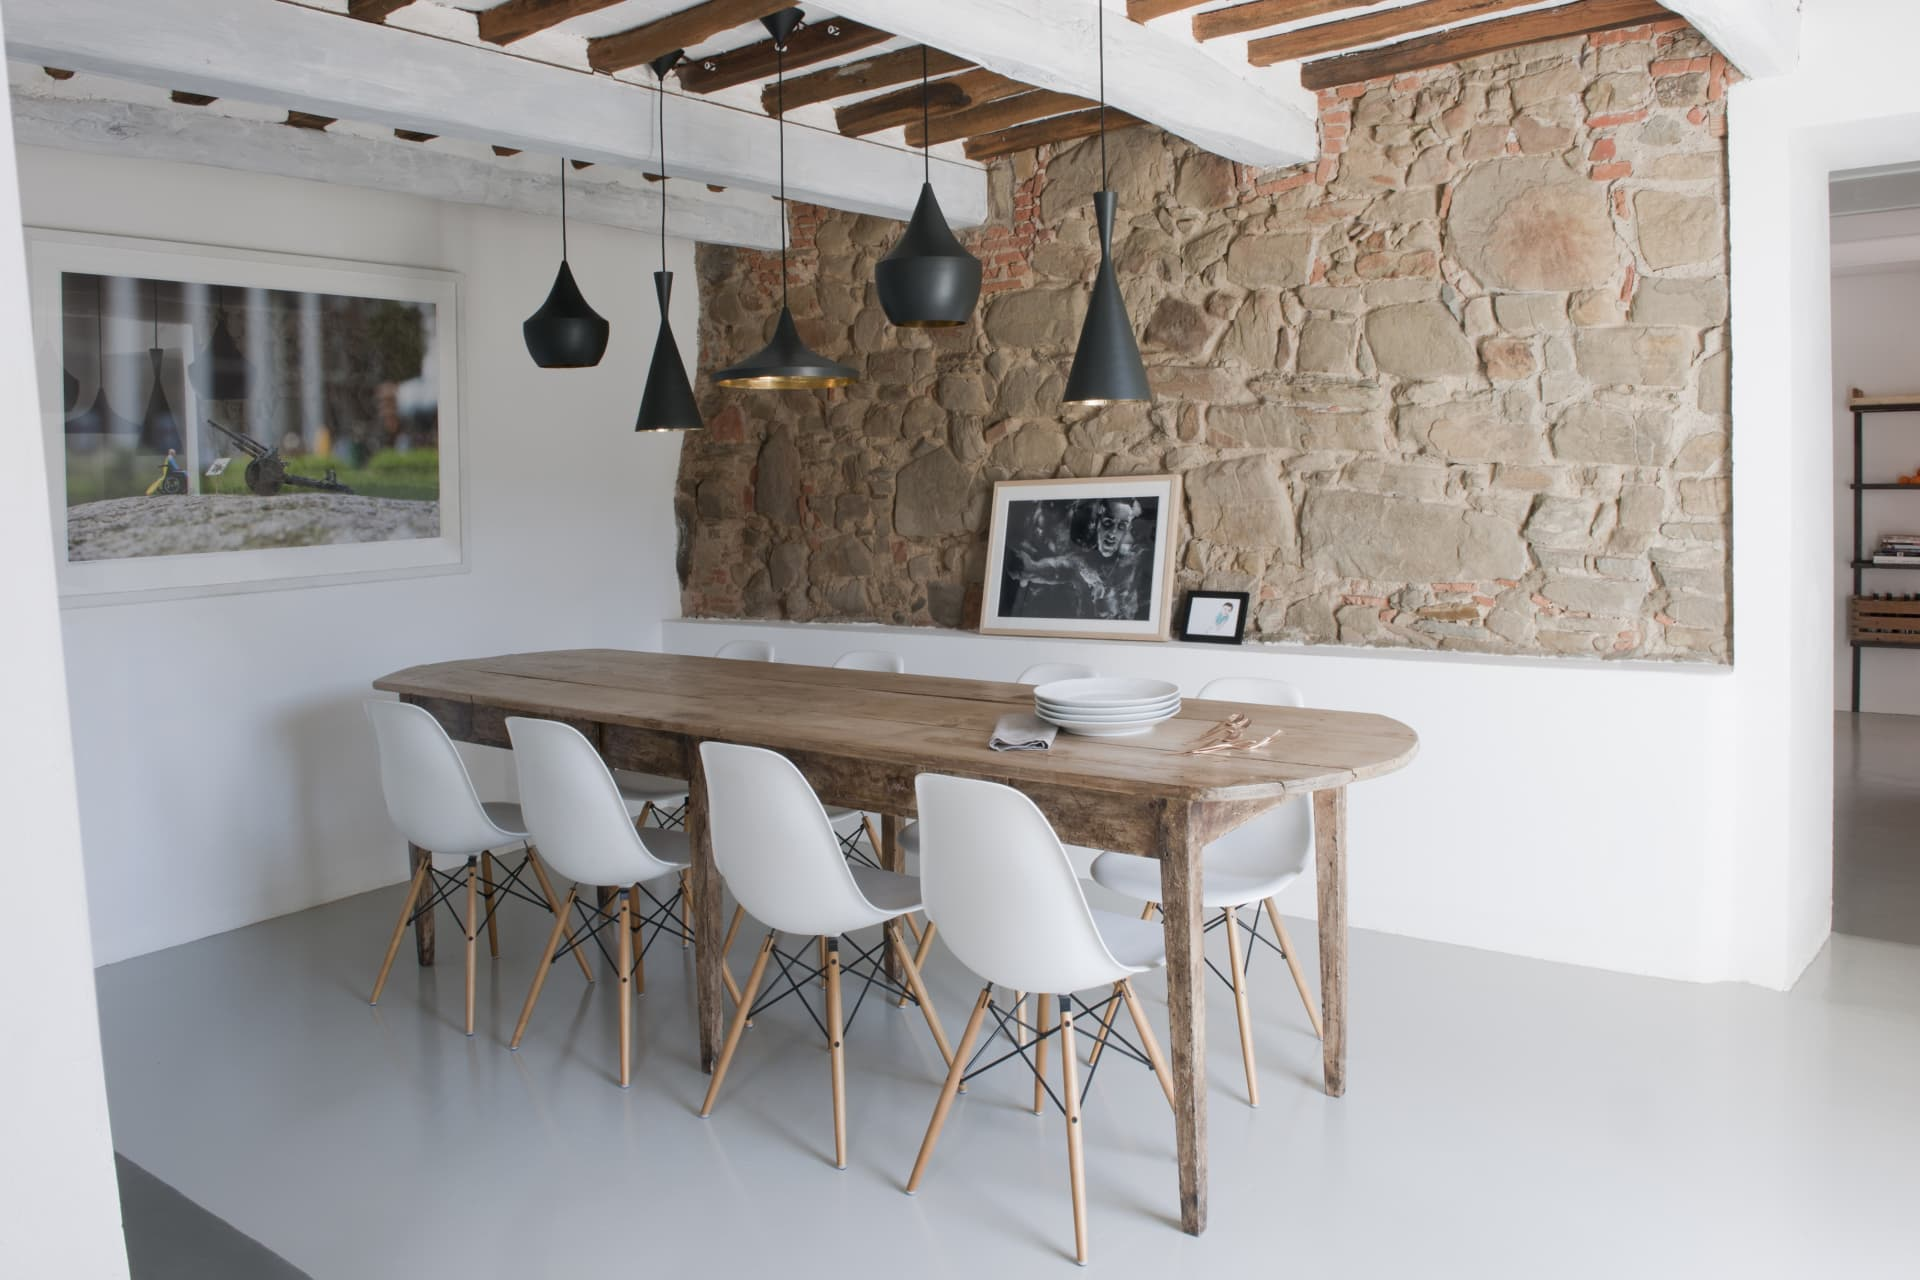 The dining room. The long wooden table is from Barthel, the chairs are from Eames, the lamps by Tom Dixon.